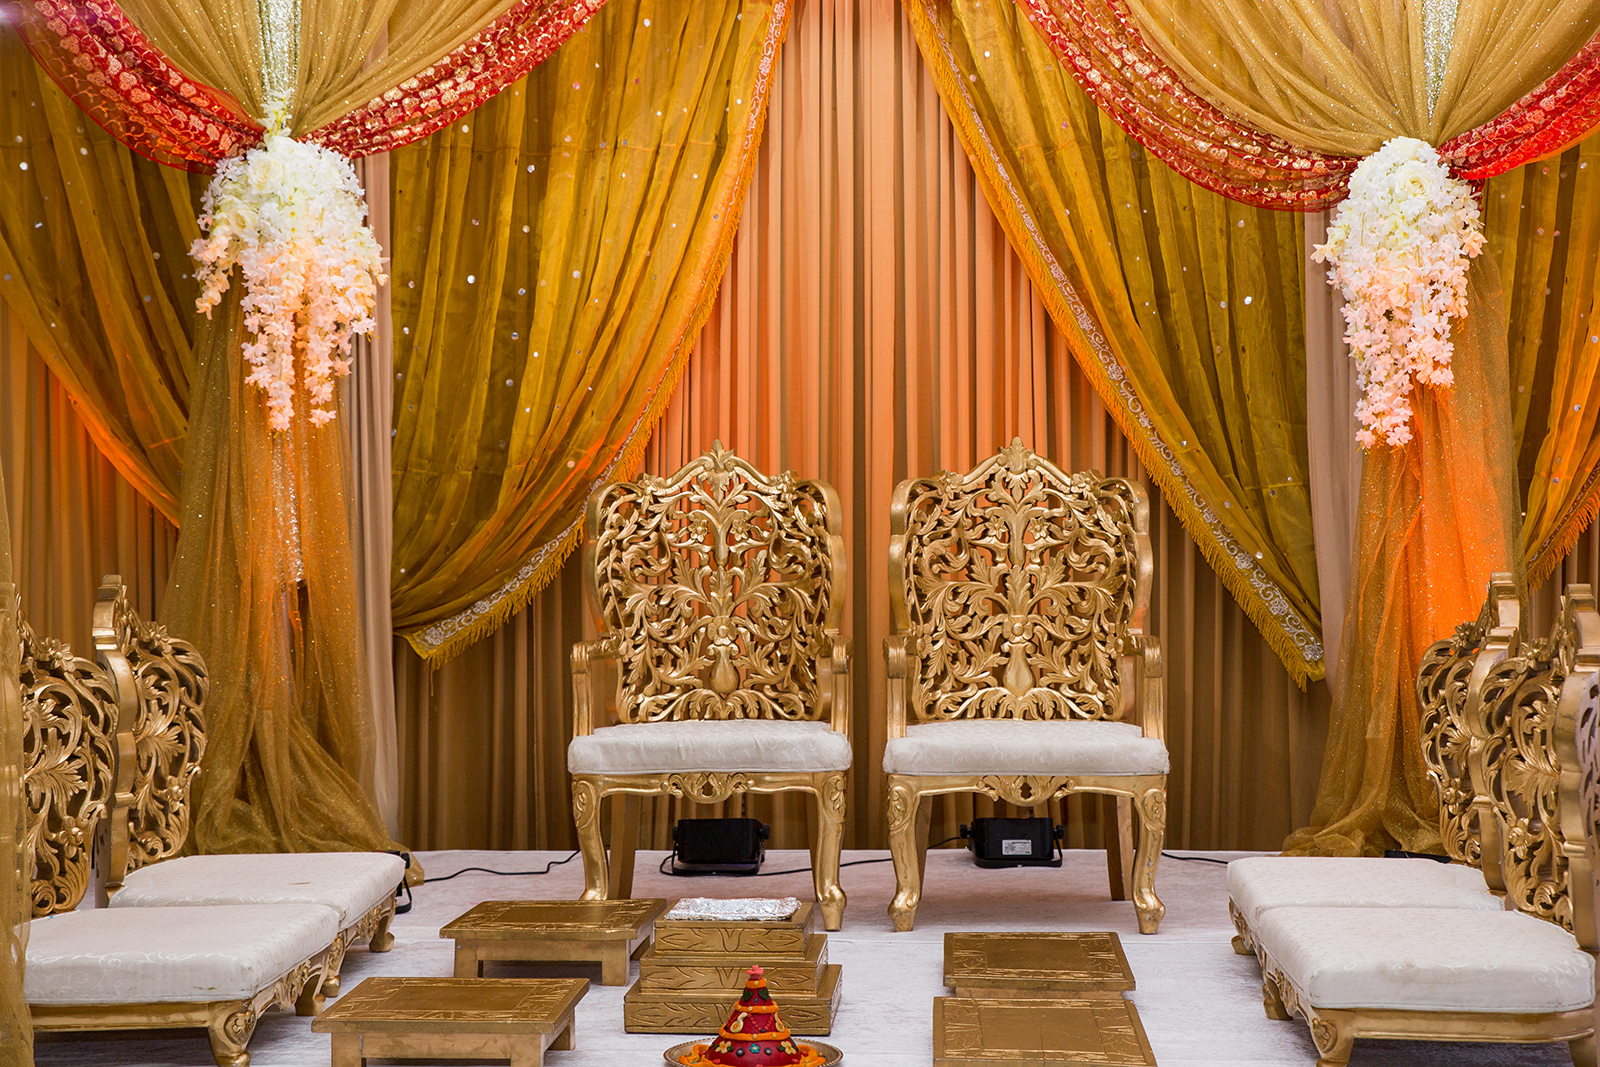 Le Cape Weddings - South Asian Wedding - Ishani and Sidhart - Ceremony Details-2.jpg